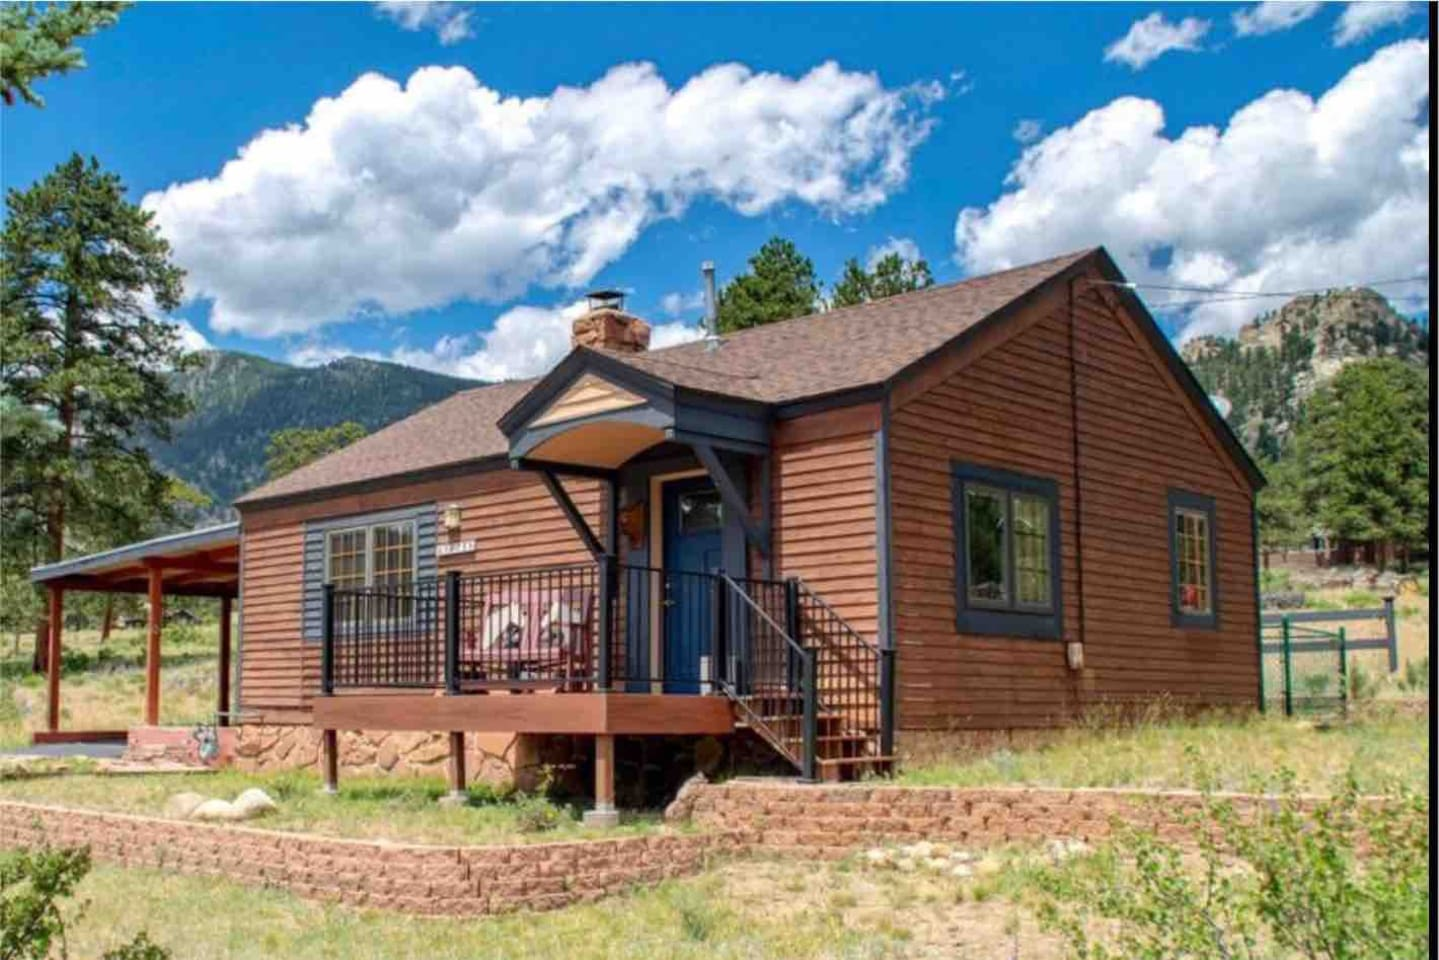 Enjoy a truly unique and special visit in this picturesque setting steps away from Rocky Mountain National Park.